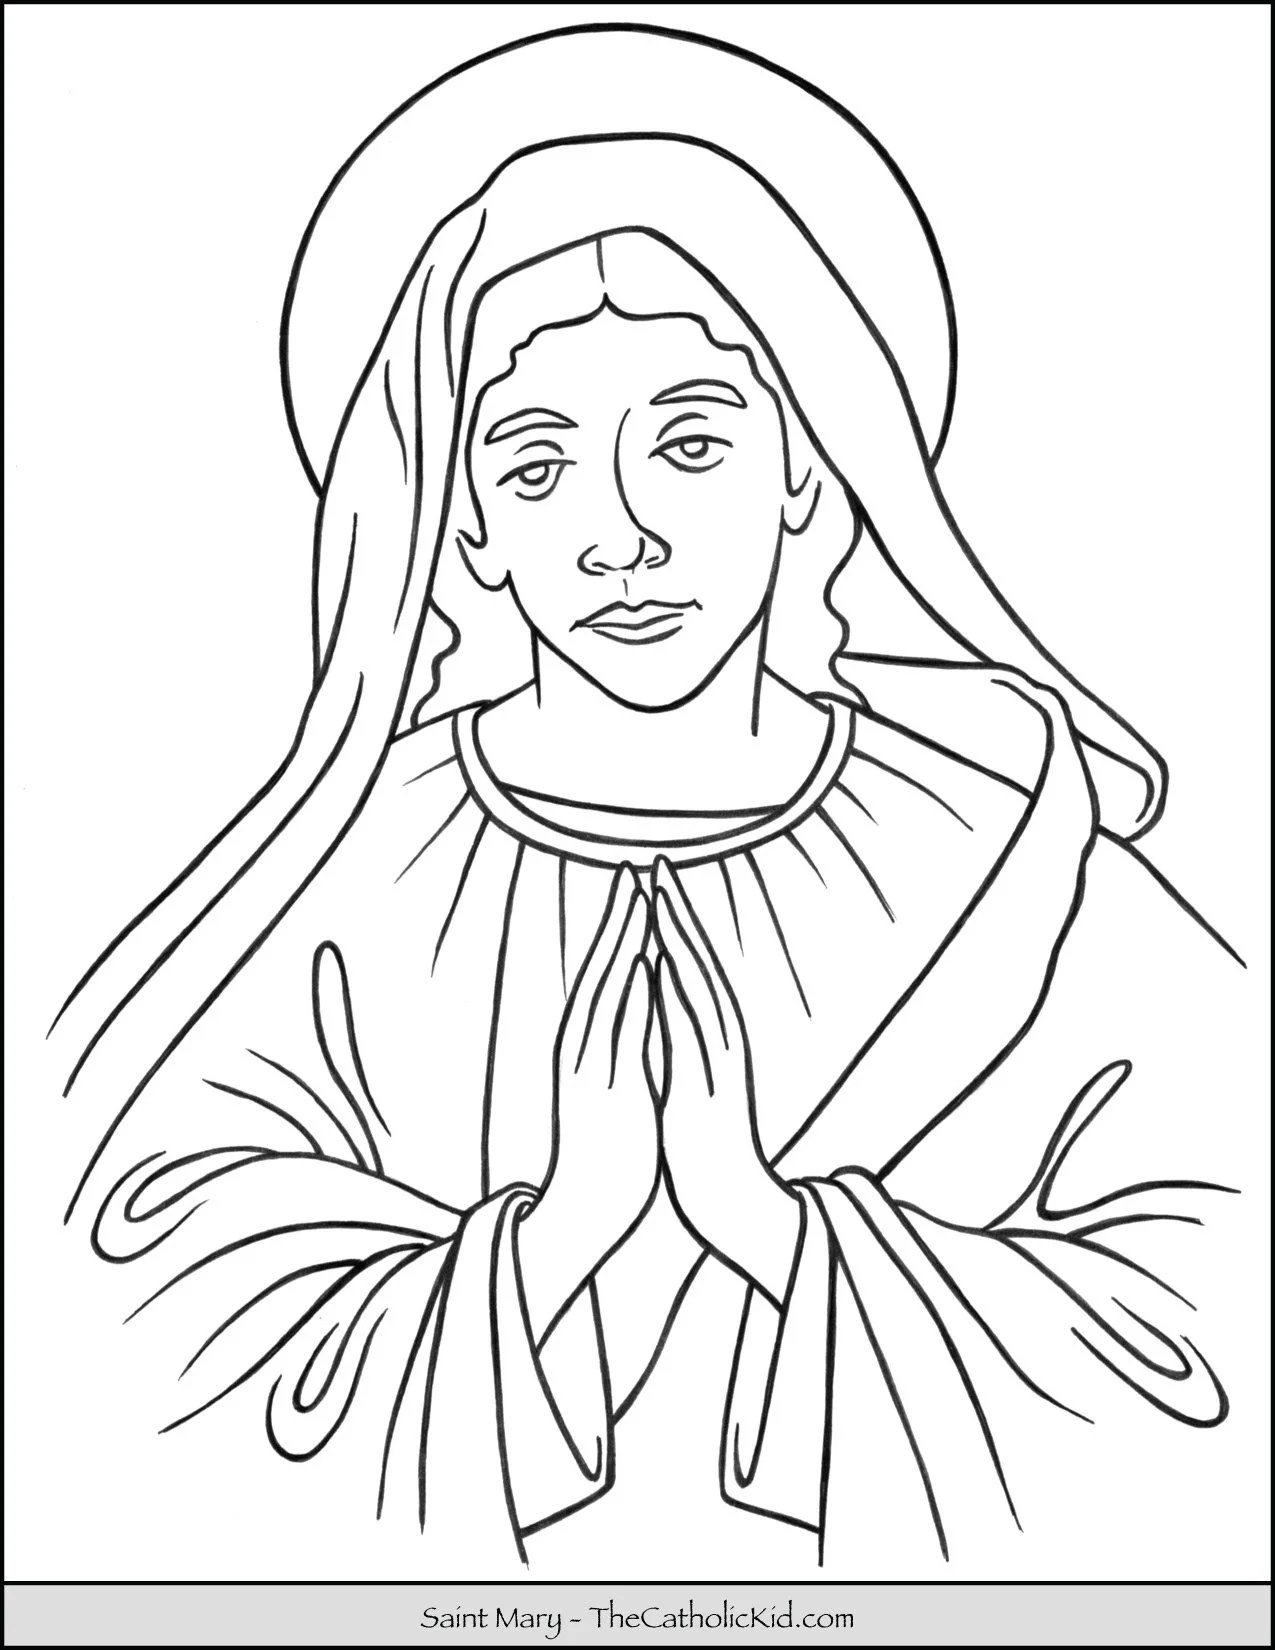 Saint Mary Coloring Page